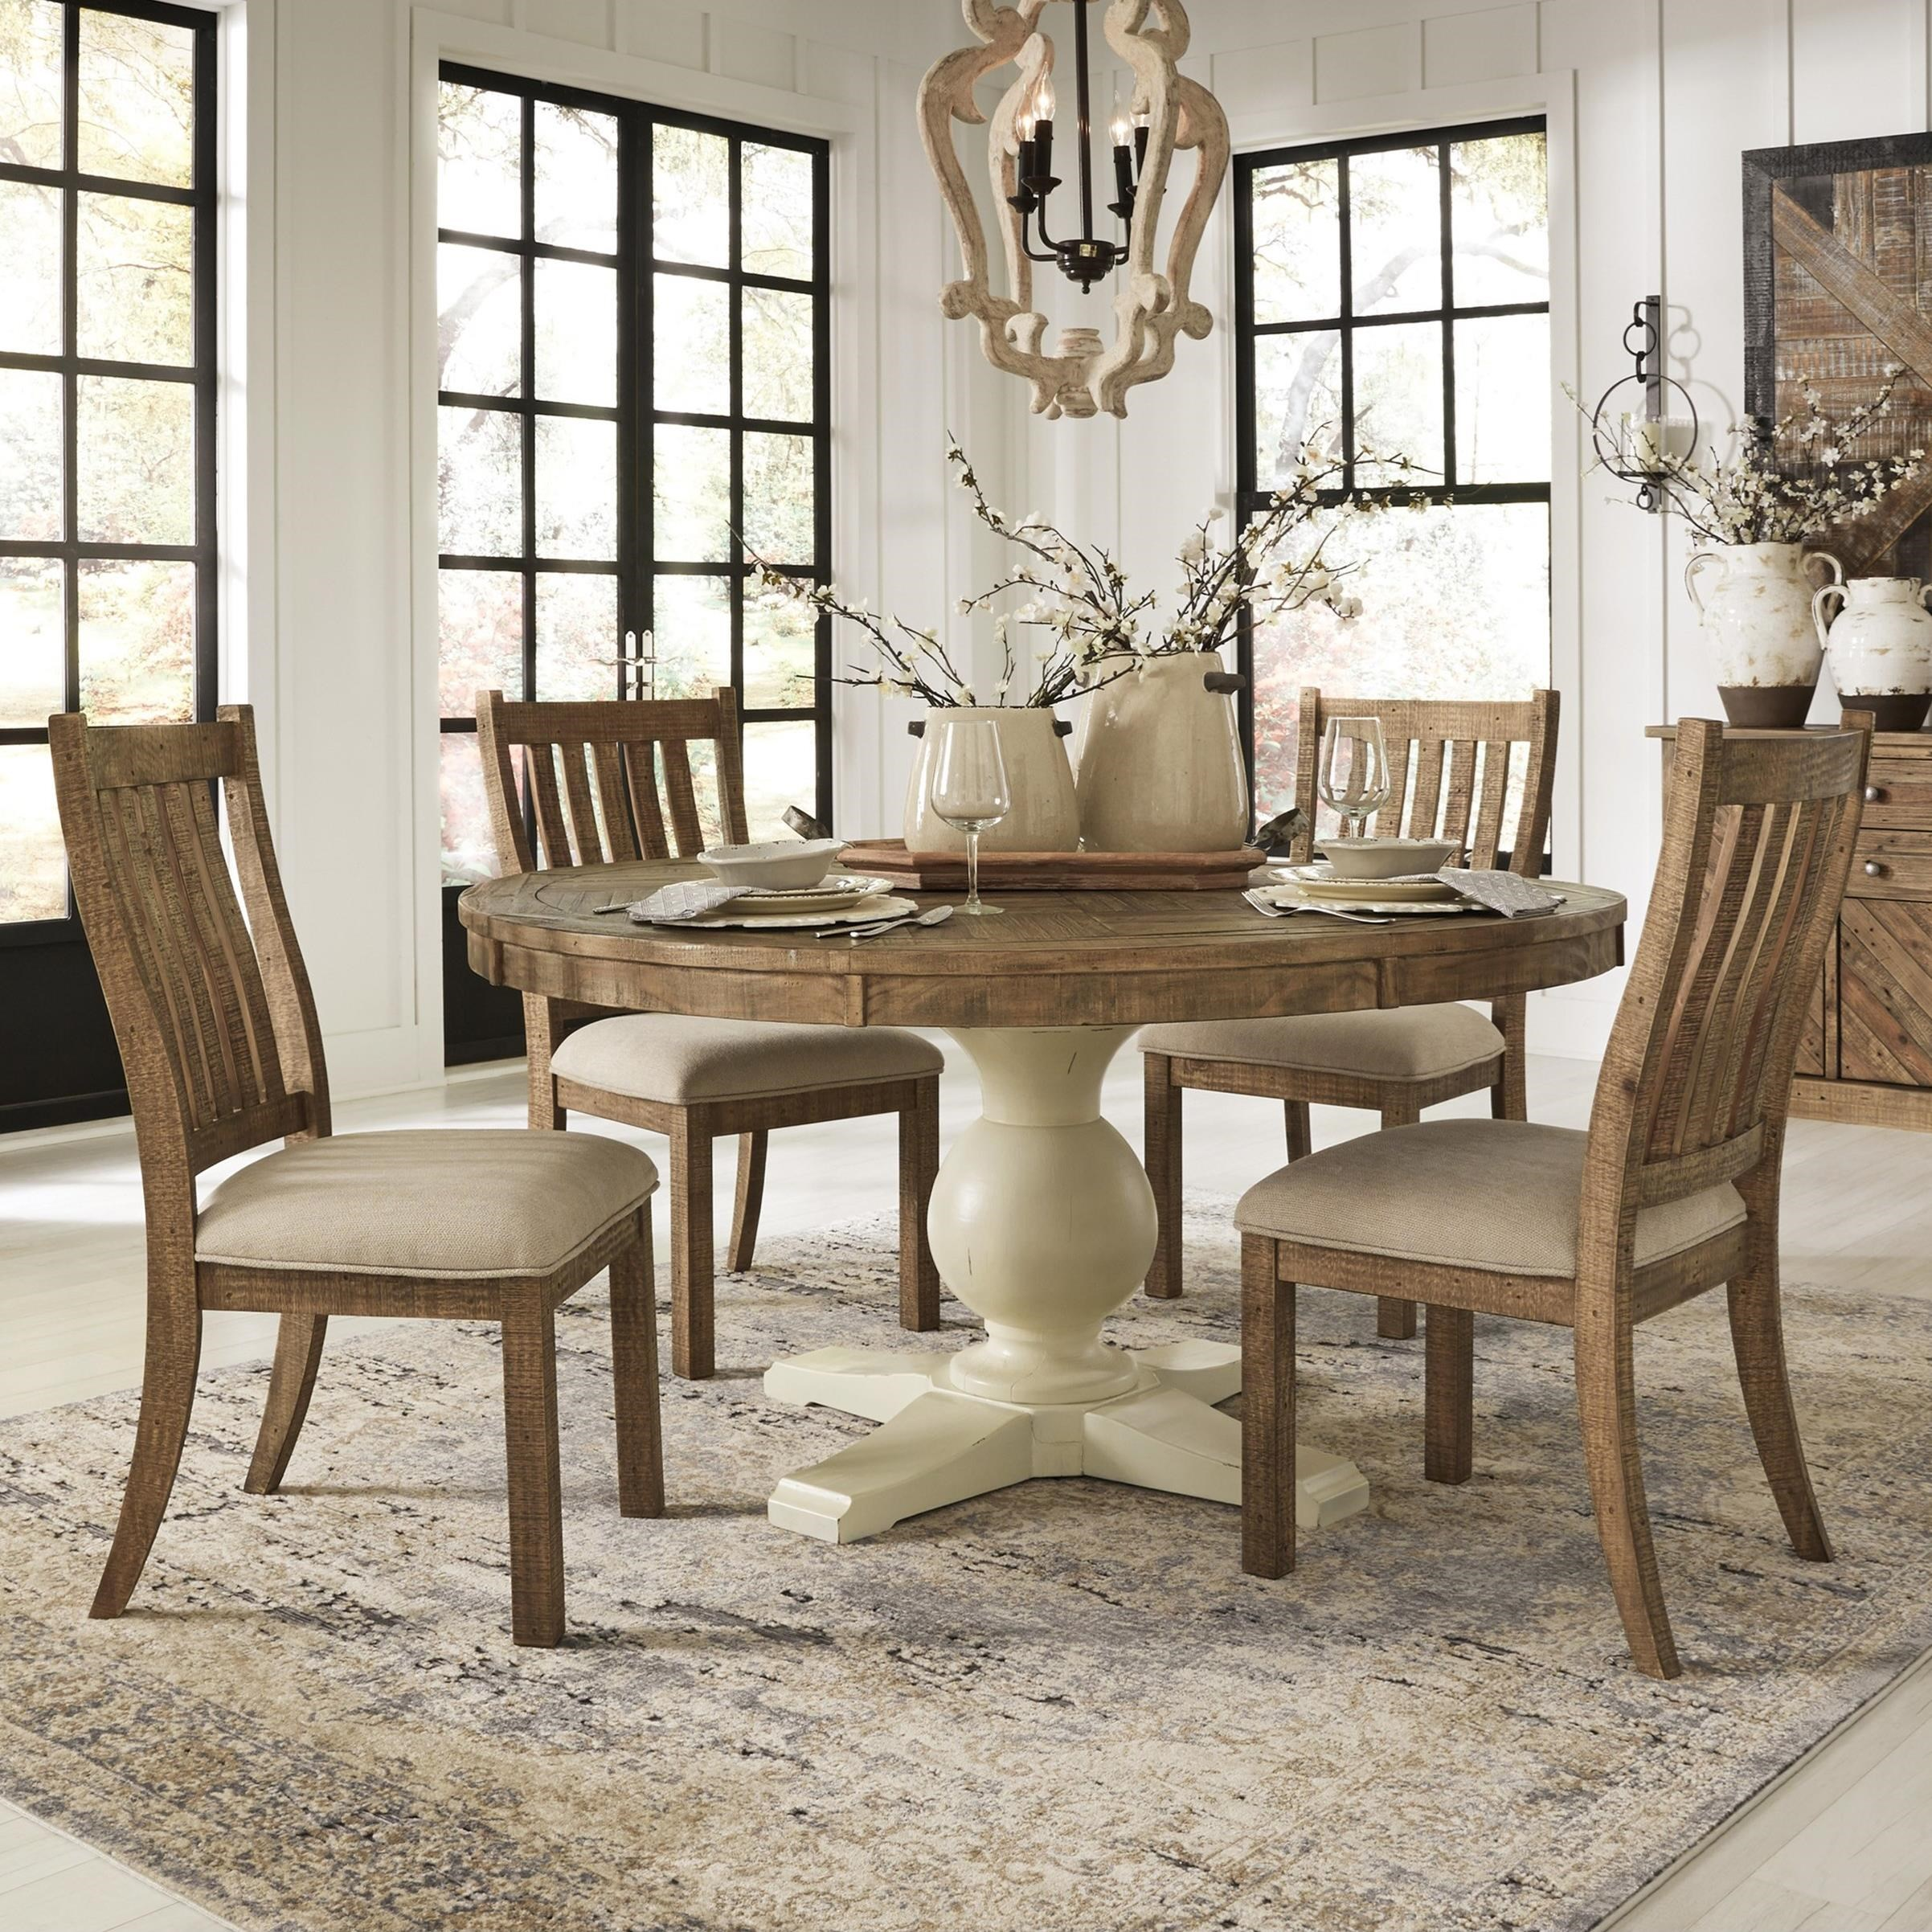 Grindleburg Dining Room Table: Grindleburg 5 Piece Round Table And Chair Set